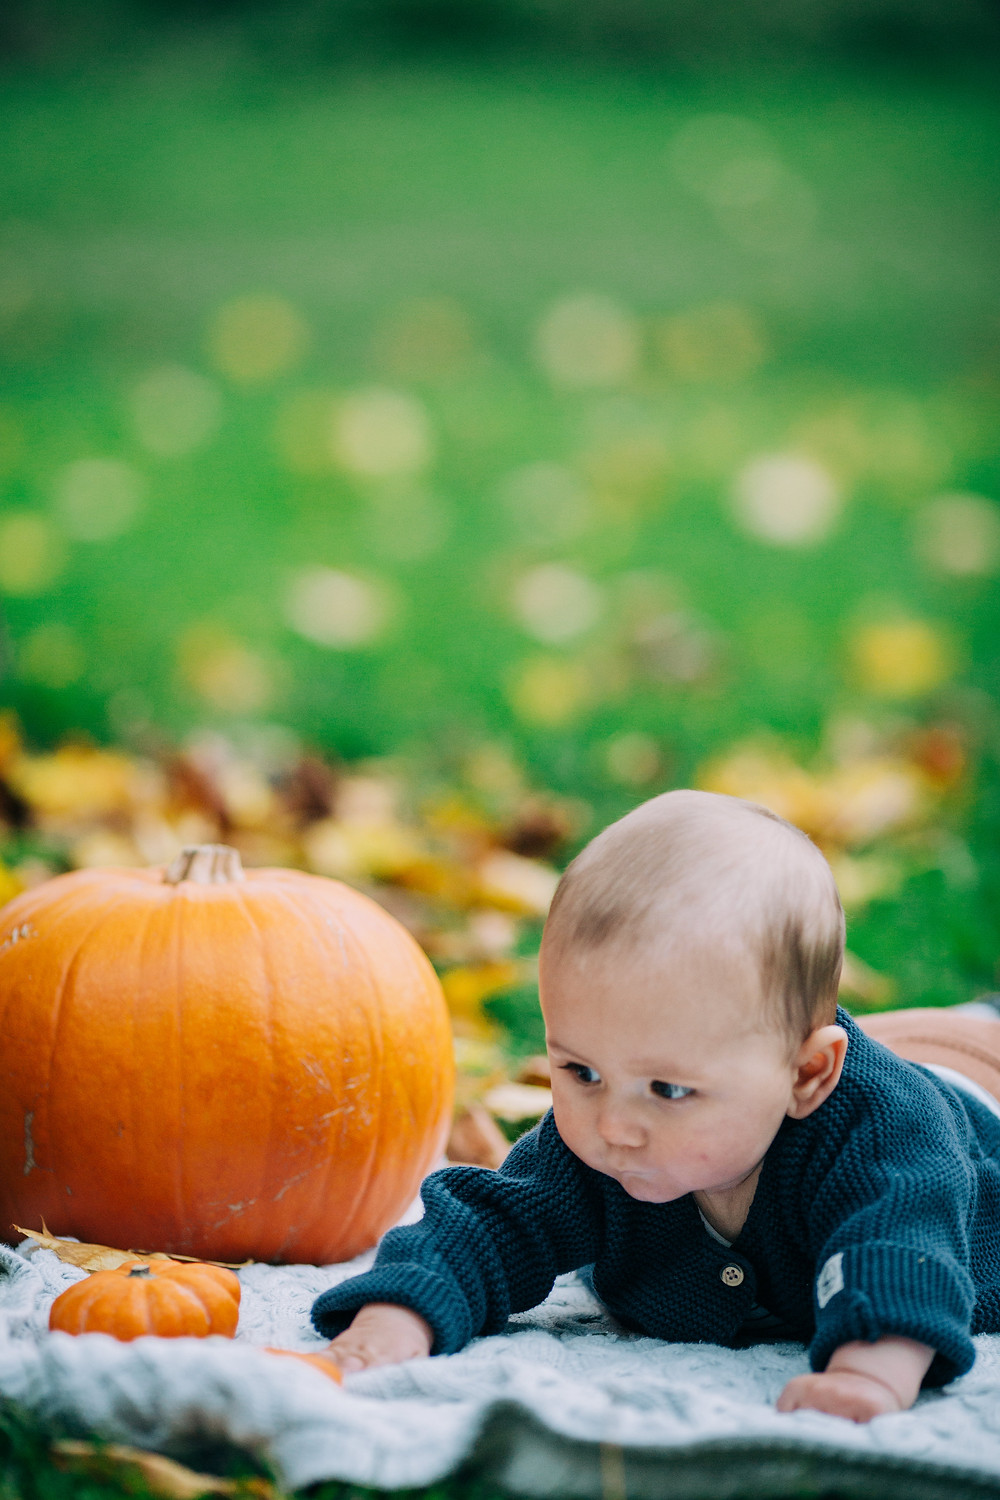 baby playing on blanket surrounded by leafy green autumnal scene and pumpkins, Heaton Park, Newcastle baby and family photographer